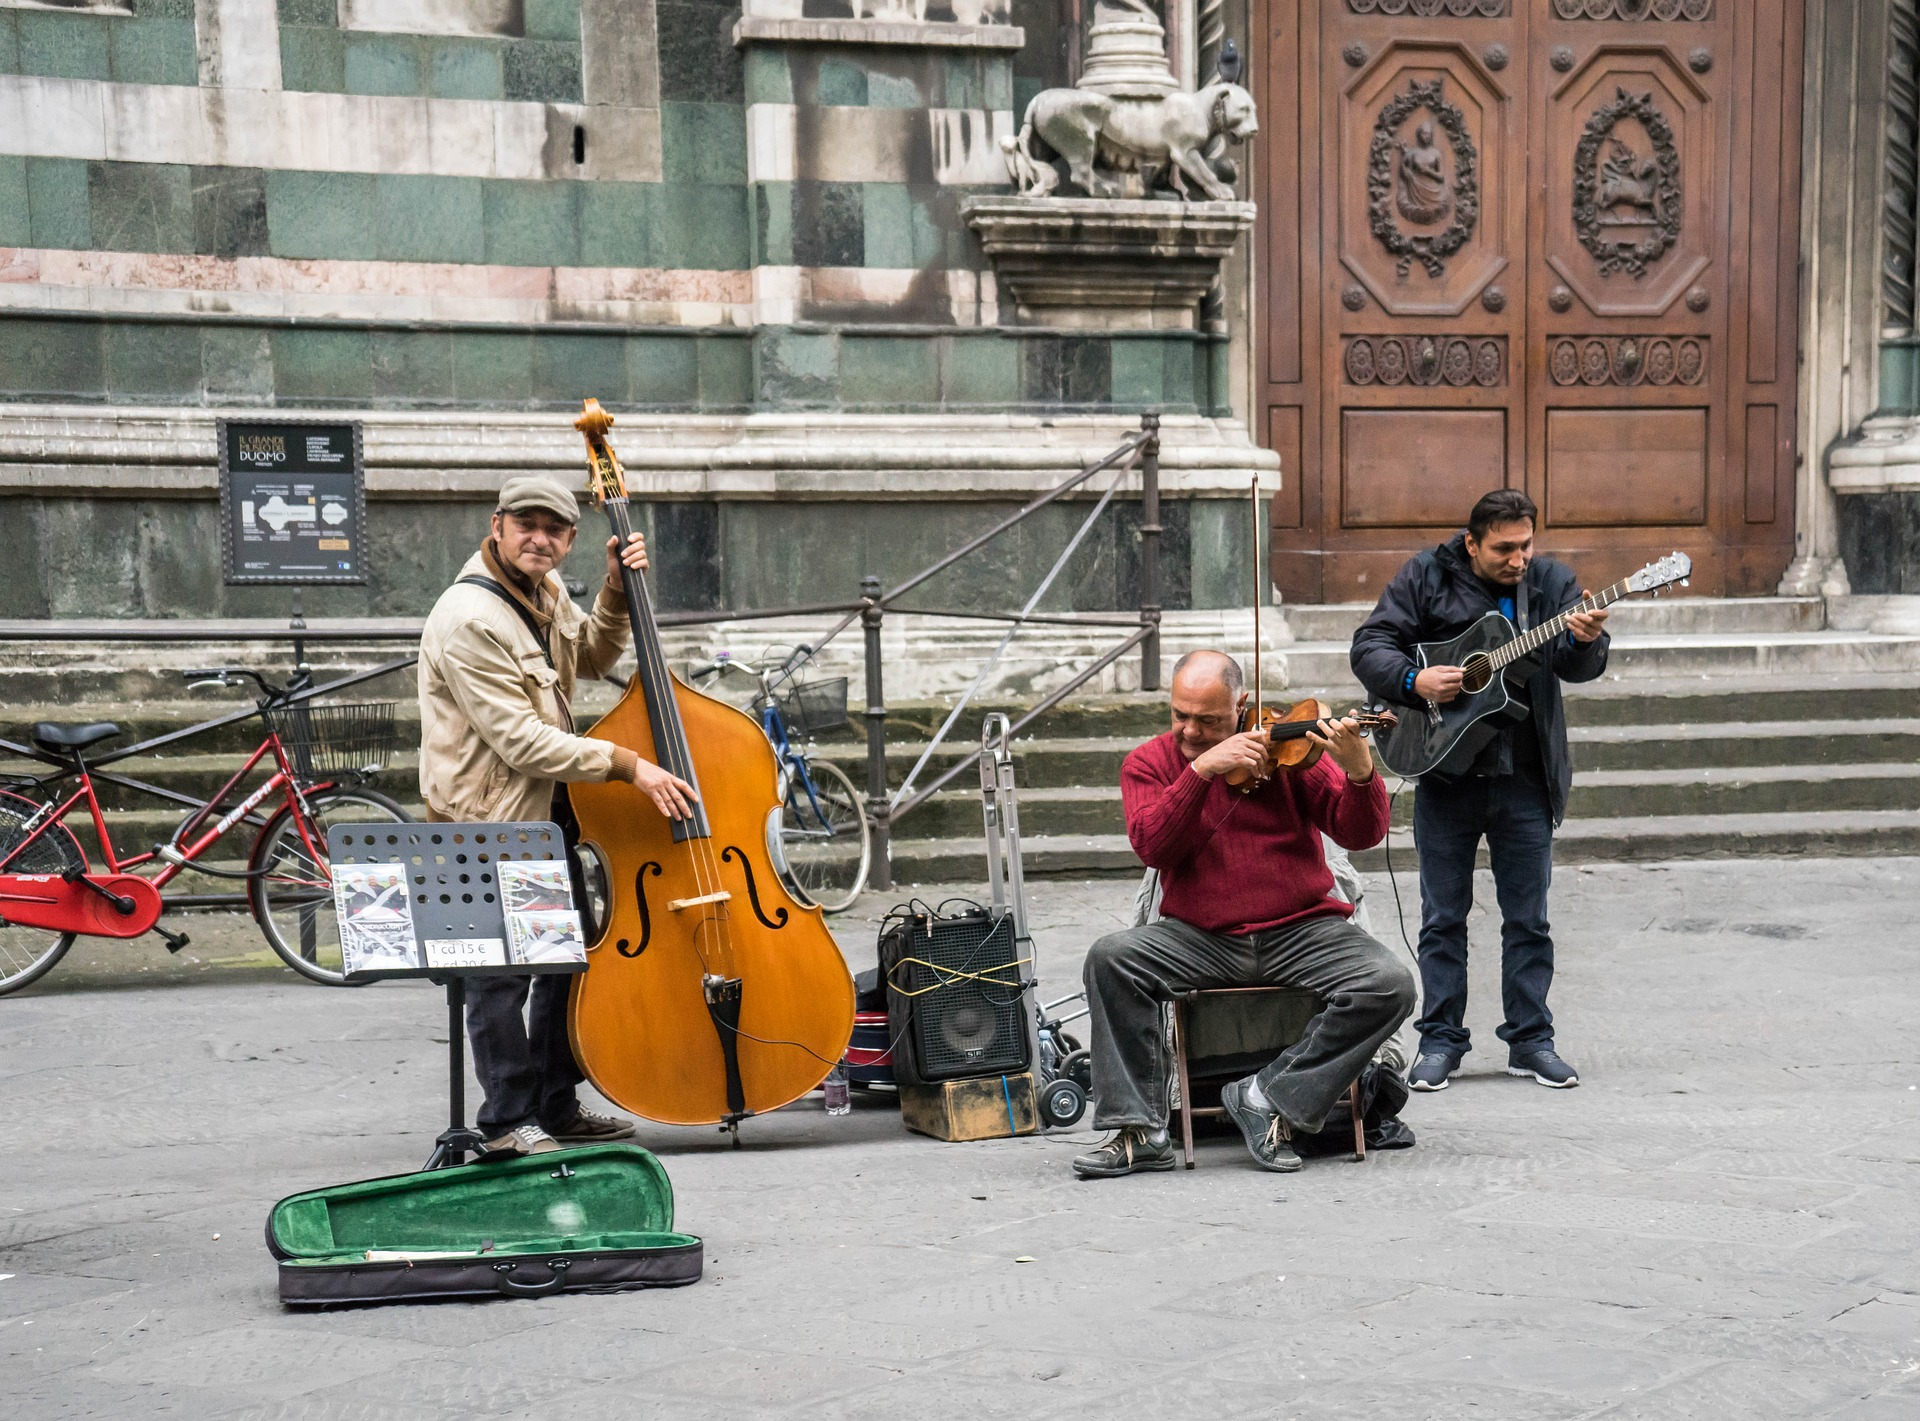 Street musicians in Florence, Italy